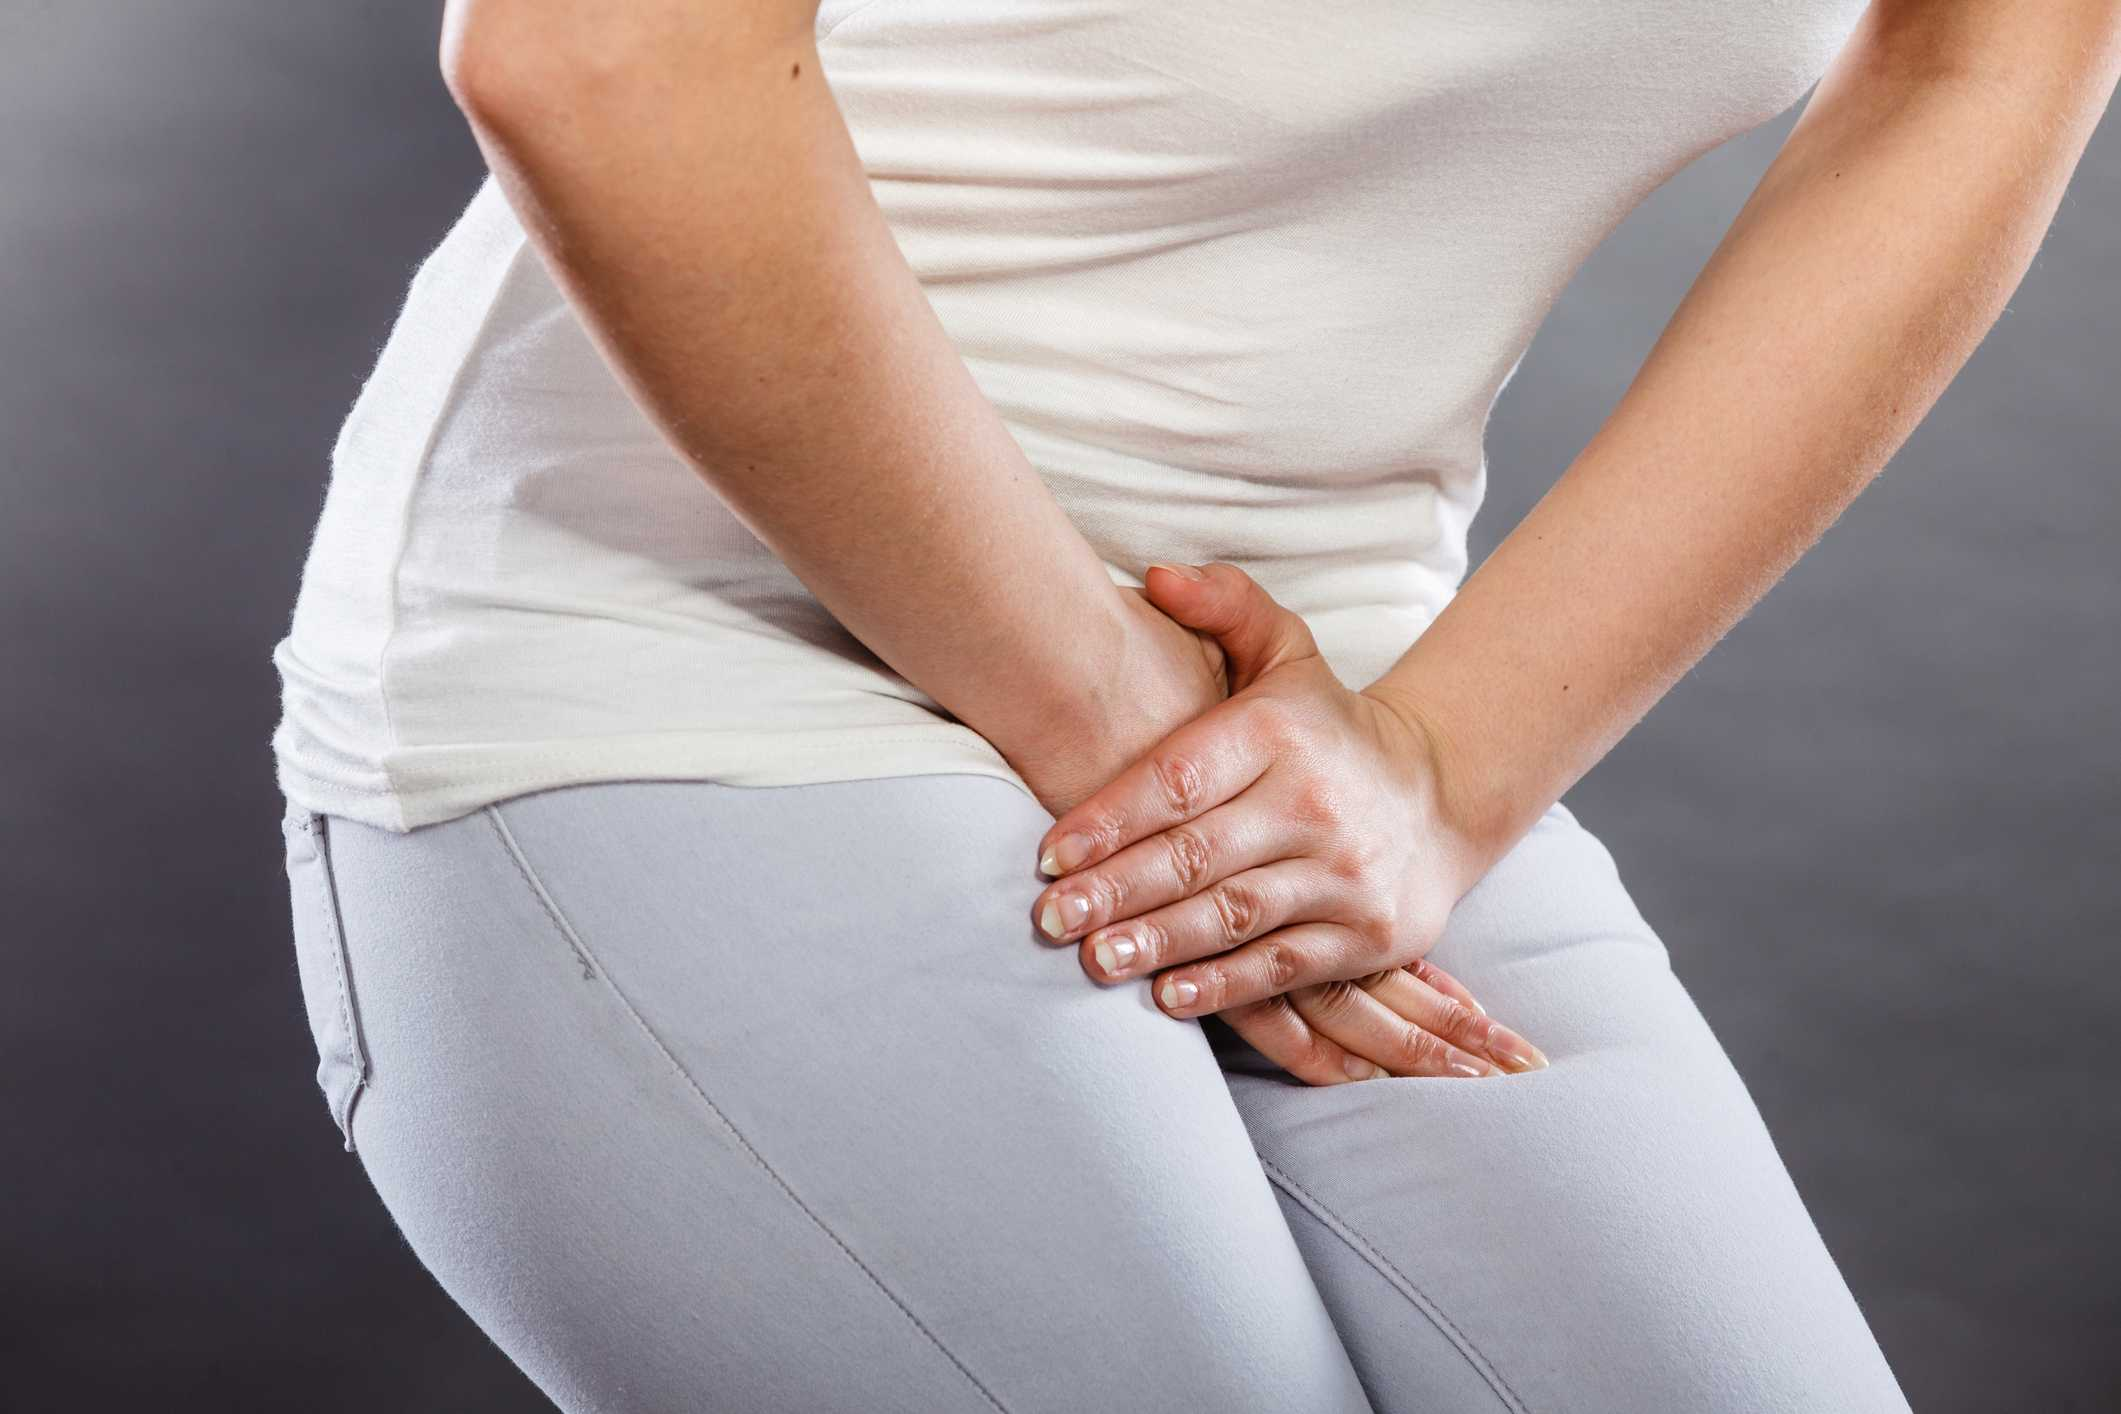 Polyuria Frequent Urination Symptoms And Causes